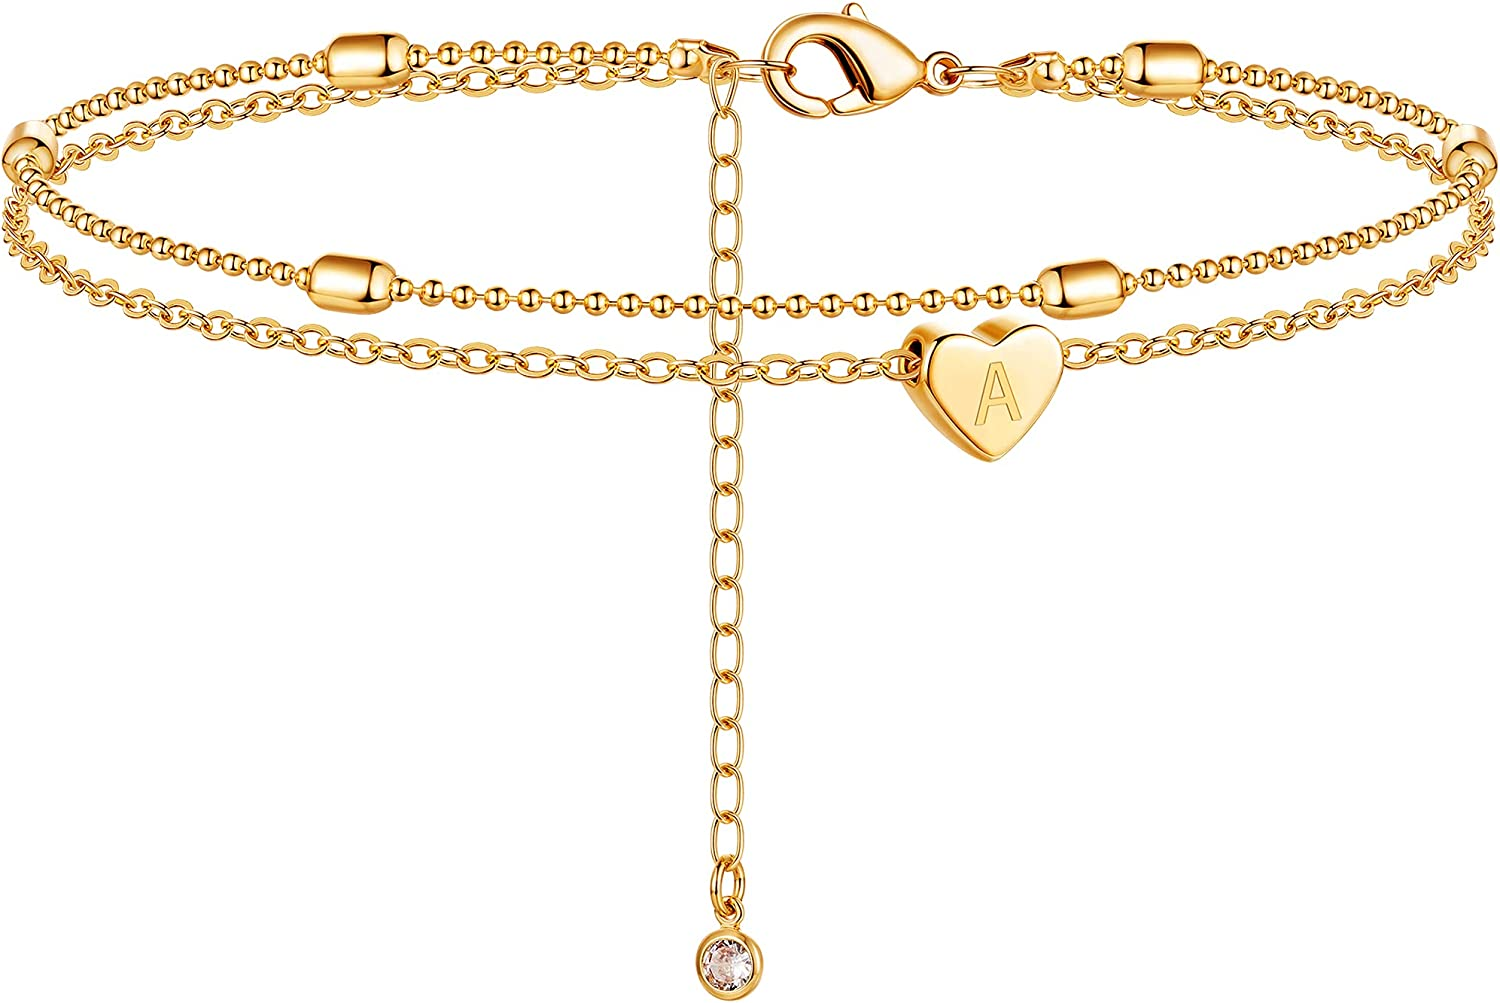 DEARMAY Gold Initial Heart Anklet 18K New product type Outlet ☆ Free Shipping He Filled Dainty Tiny